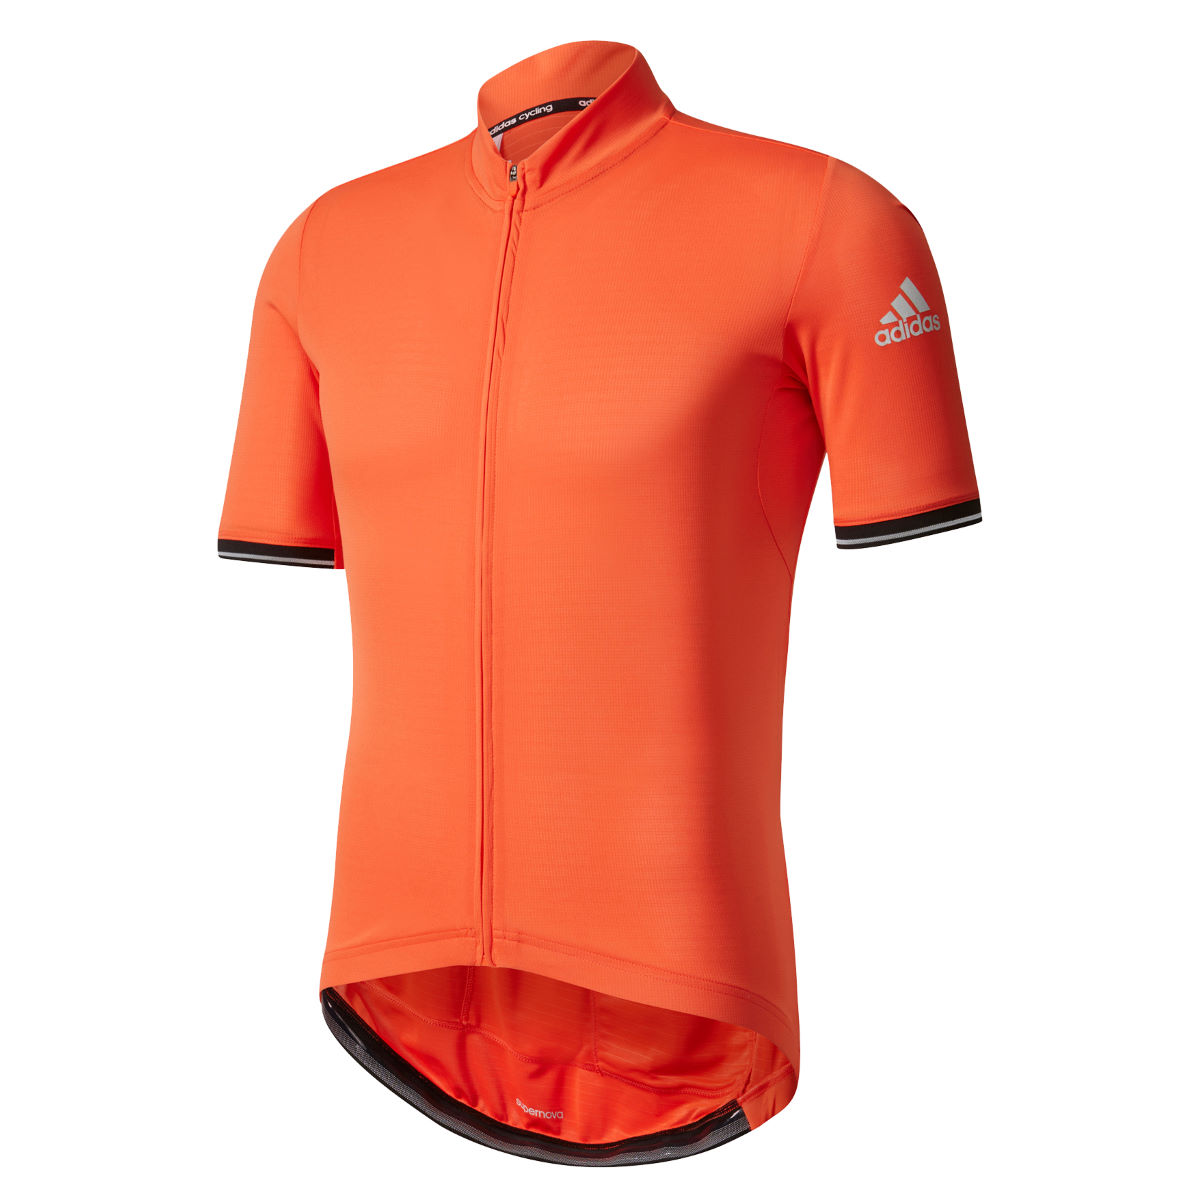 Maillot Adidas Cycling Clima Chill (manches courtes) - M Energy